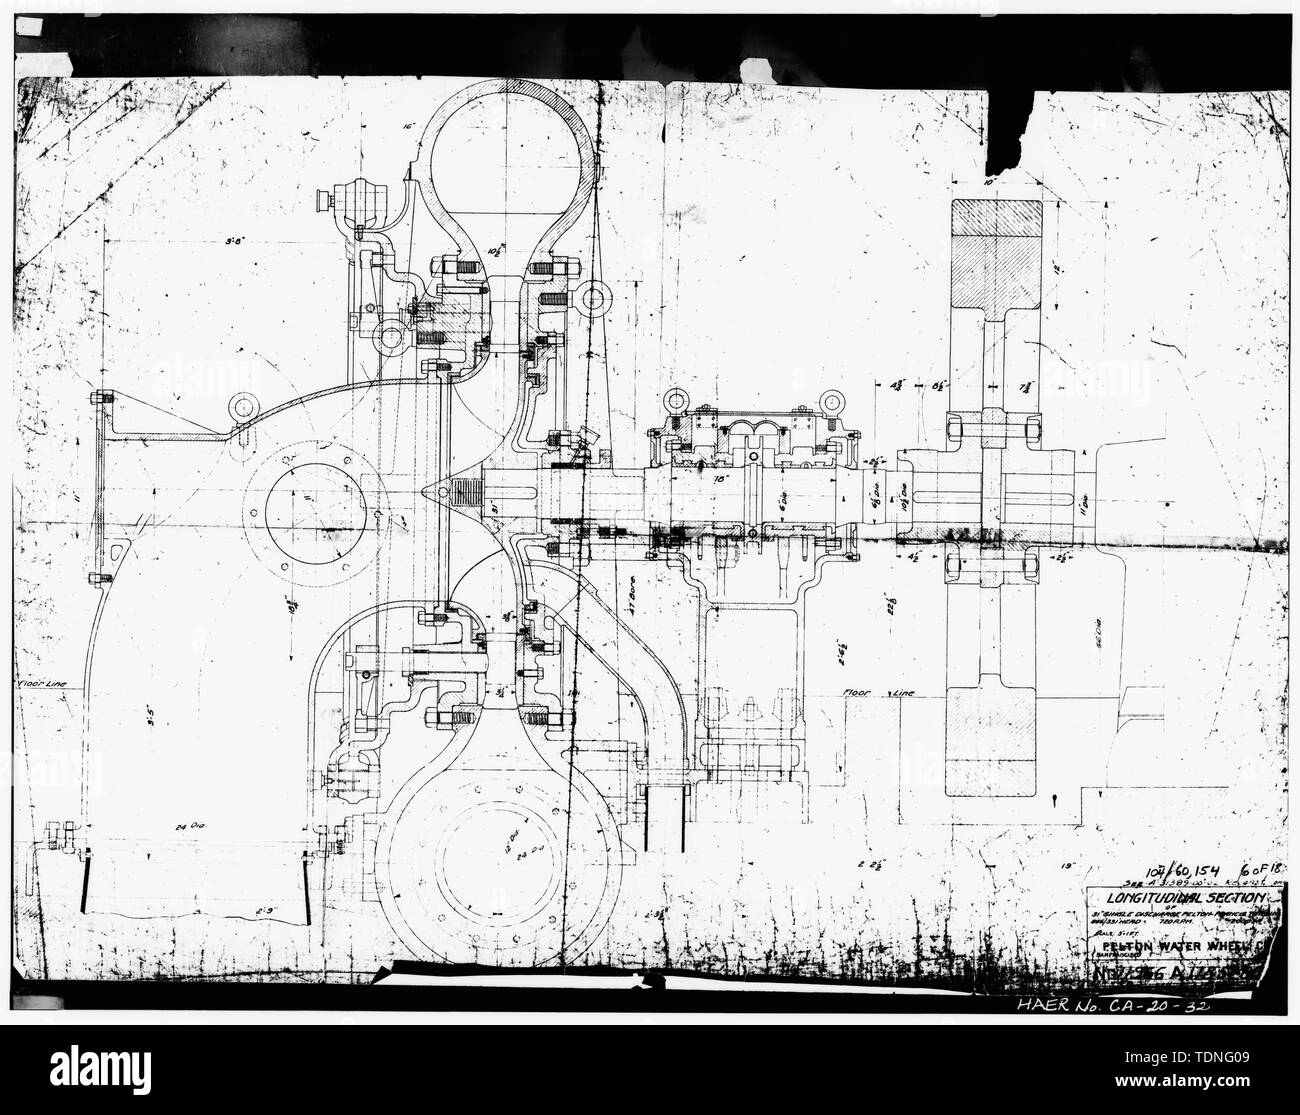 Photocopy of microfiched construction drawing by Pelton Water Wheel